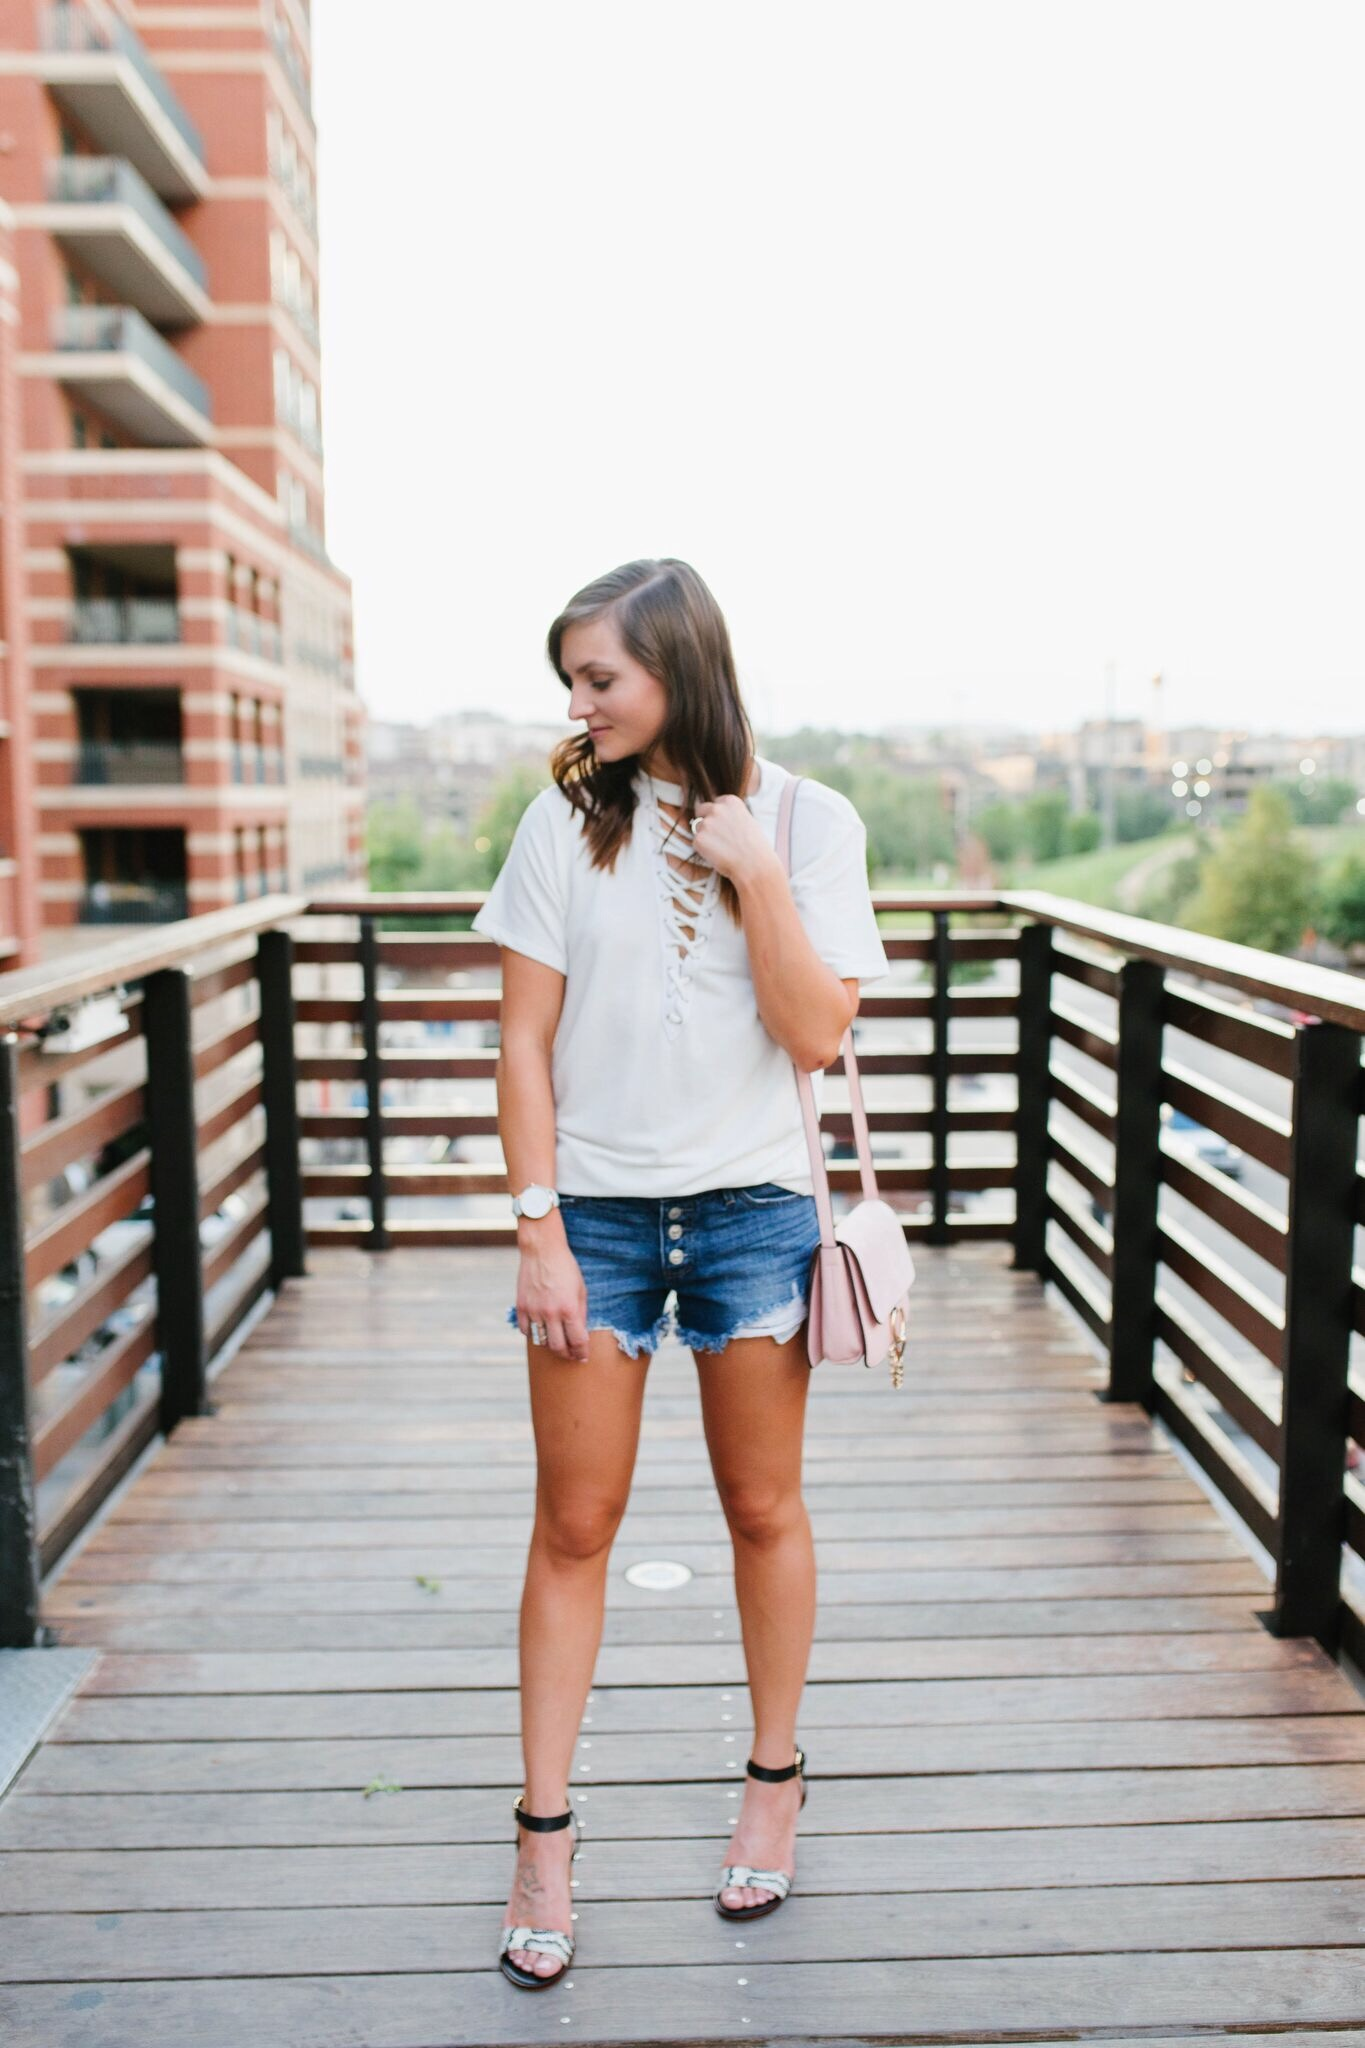 "<img src = ""four-ways-to-save-money-while-shopping.jpg"" alt = ""fashion-blogger-shares-tips-to-saving-money-while-shopping-while-styling-denim-cut-off-shorts"">"